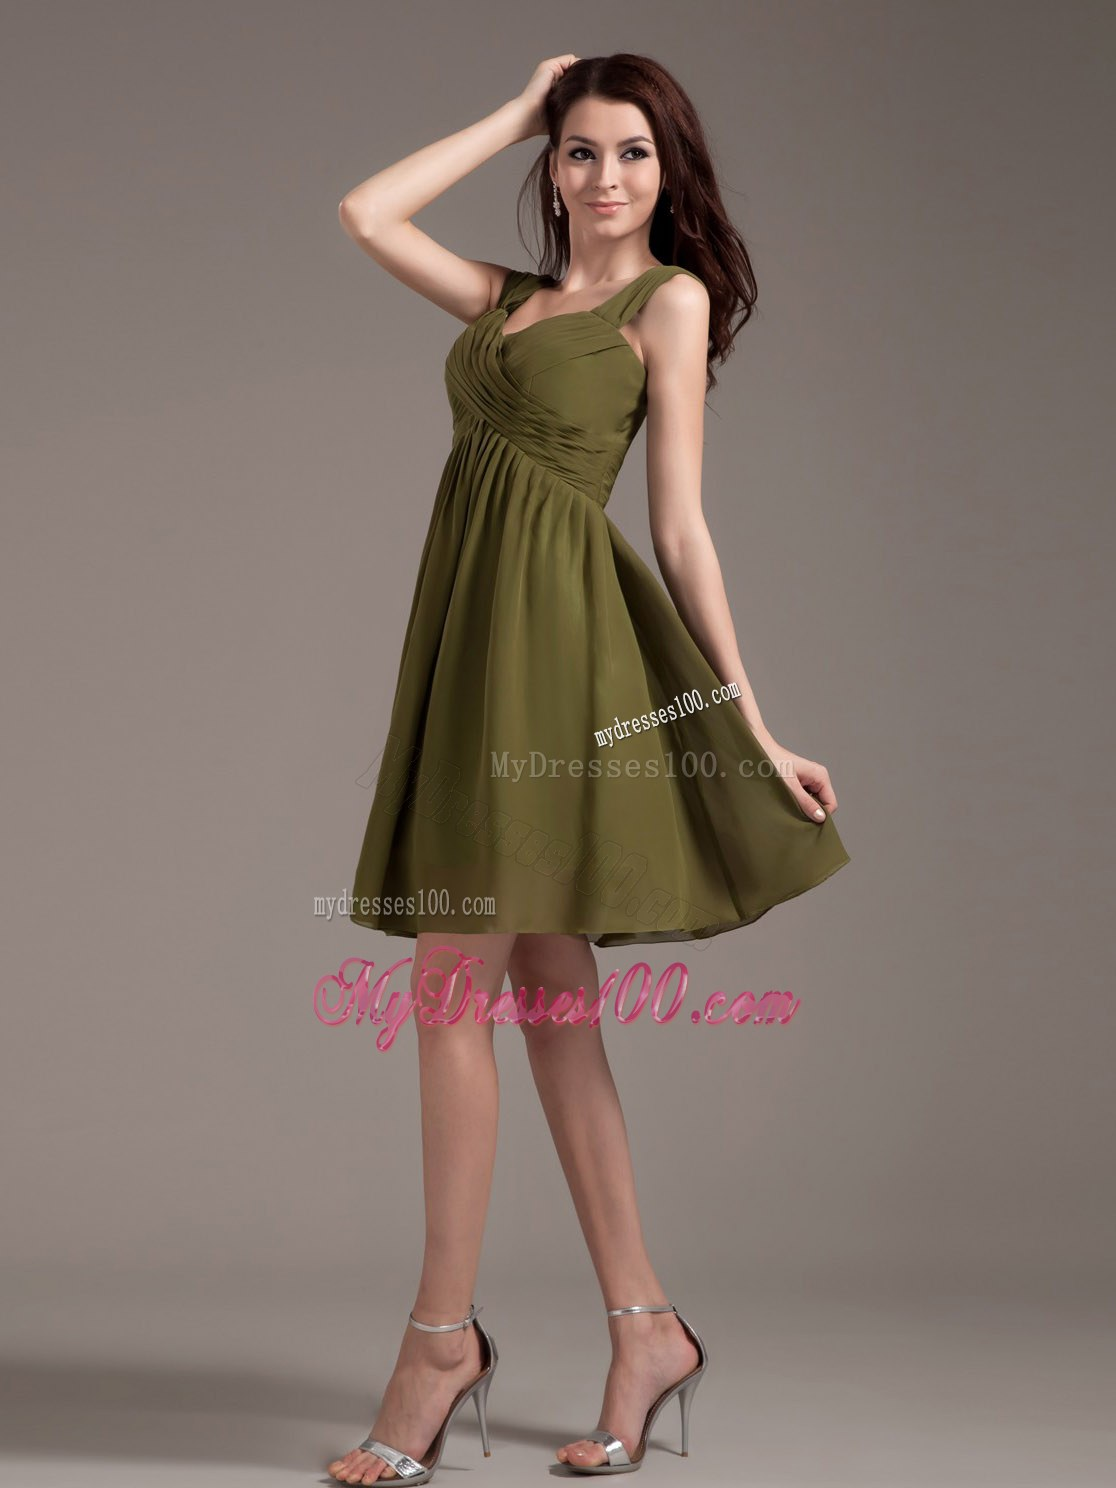 Olive green ruched chiffon knee length bridesmaid dress straps olive green ruched chiffon knee length bridesmaid dress ombrellifo Images